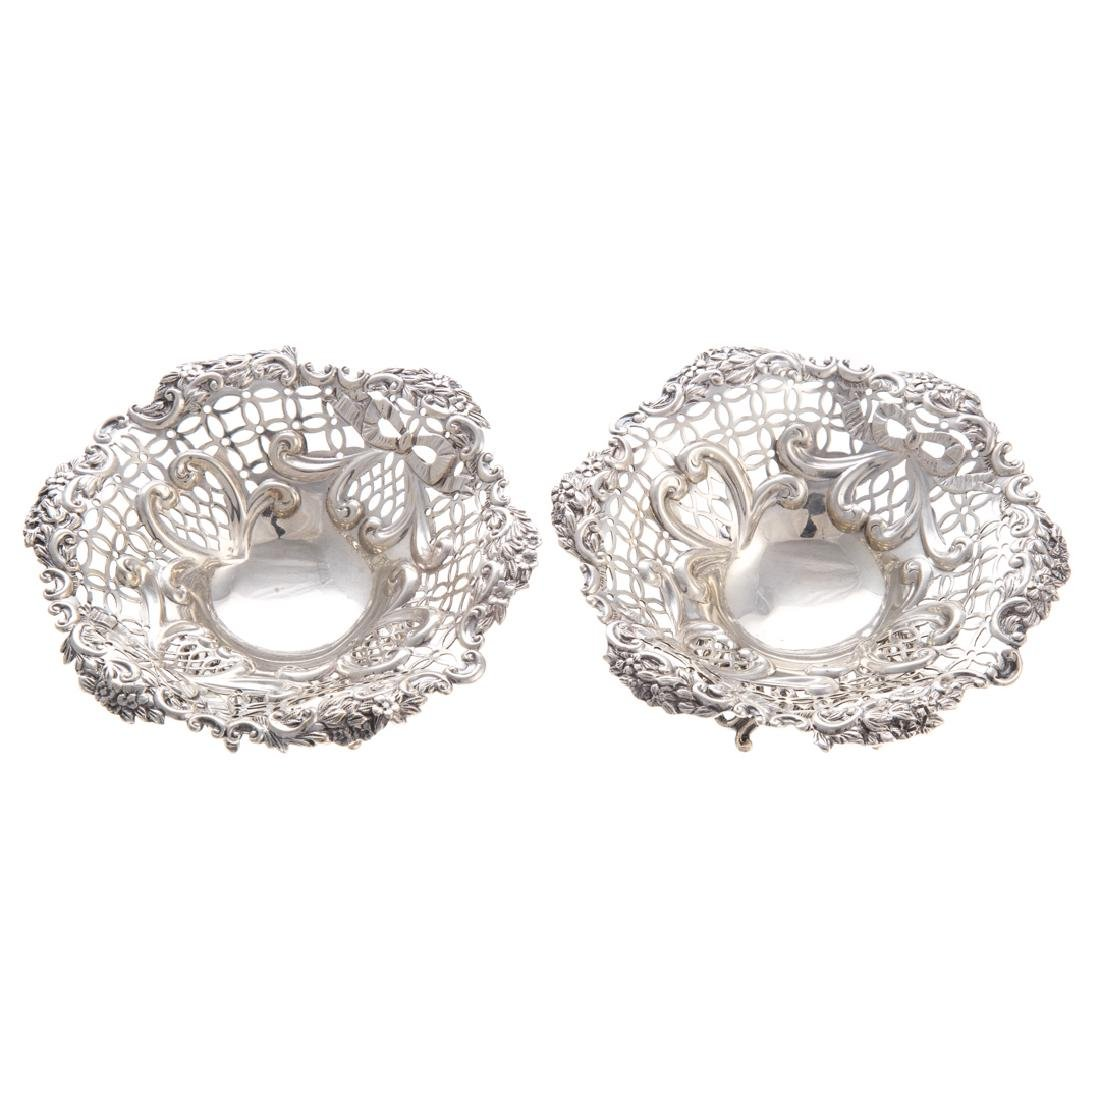 Pair Victorian silver open worked bon bon dishes - 2